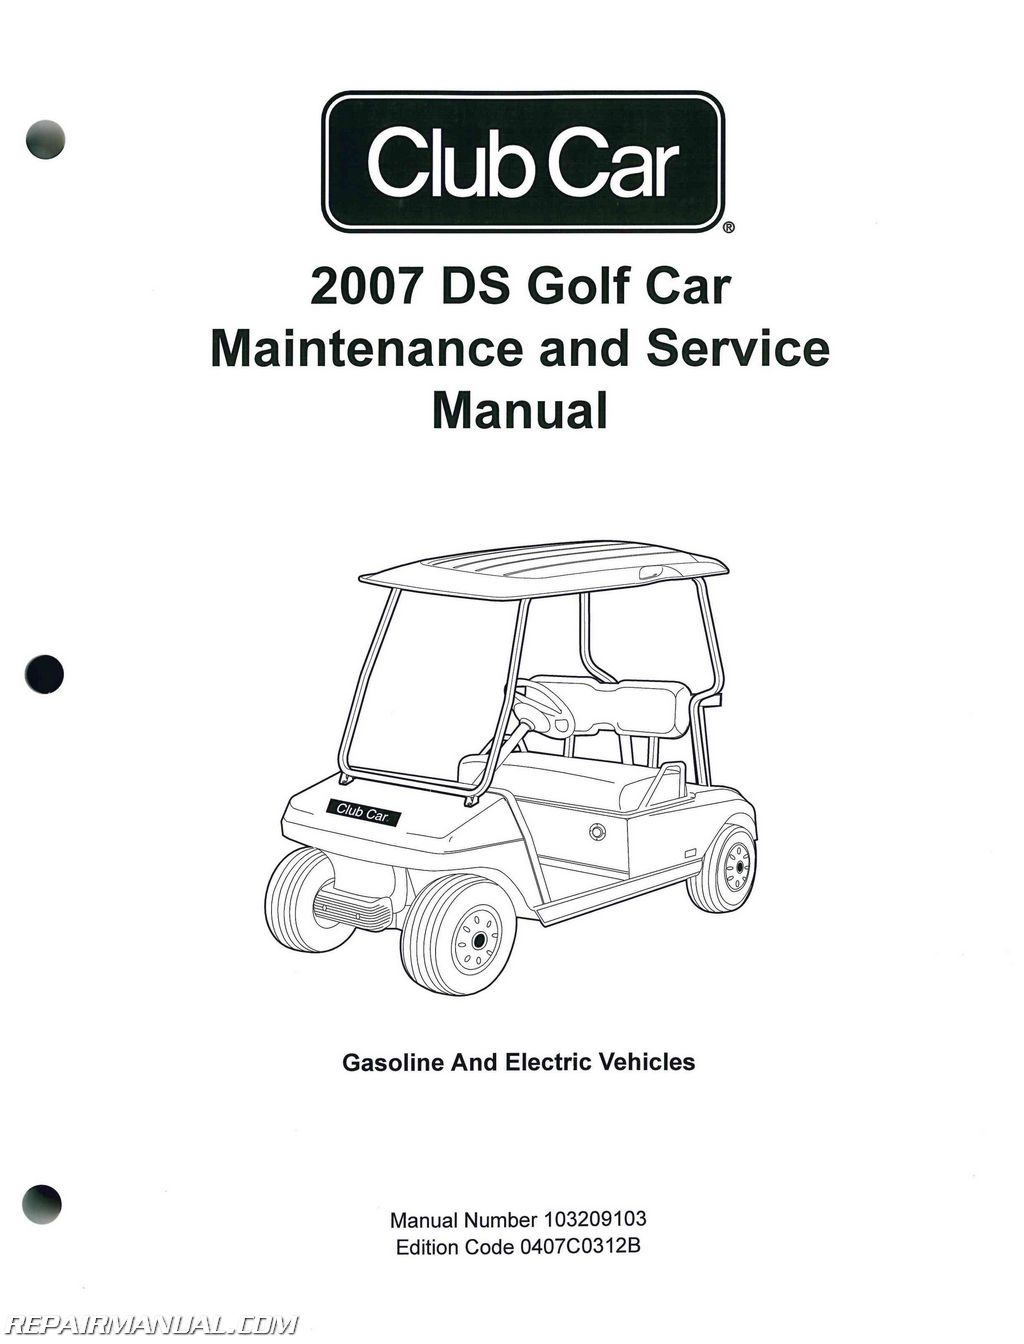 Club Car Ds Golf Car Gas And Electric Golf Cart Service Manual